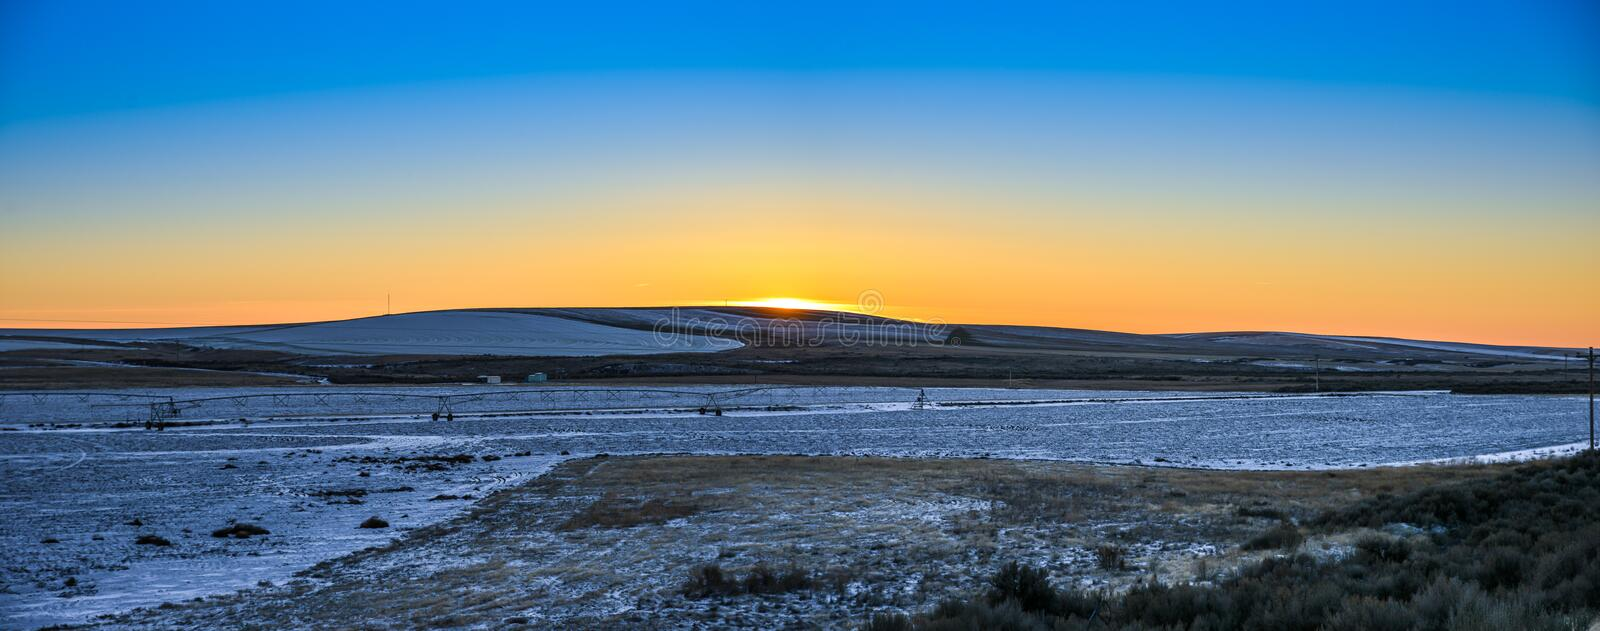 Red Golden Winter Sunset On The Horizon Of Hilly Snow Field Farmland Under Darken Blue Sky, Washington, United States. Vibrant golden-red sunset painted the royalty free stock photo